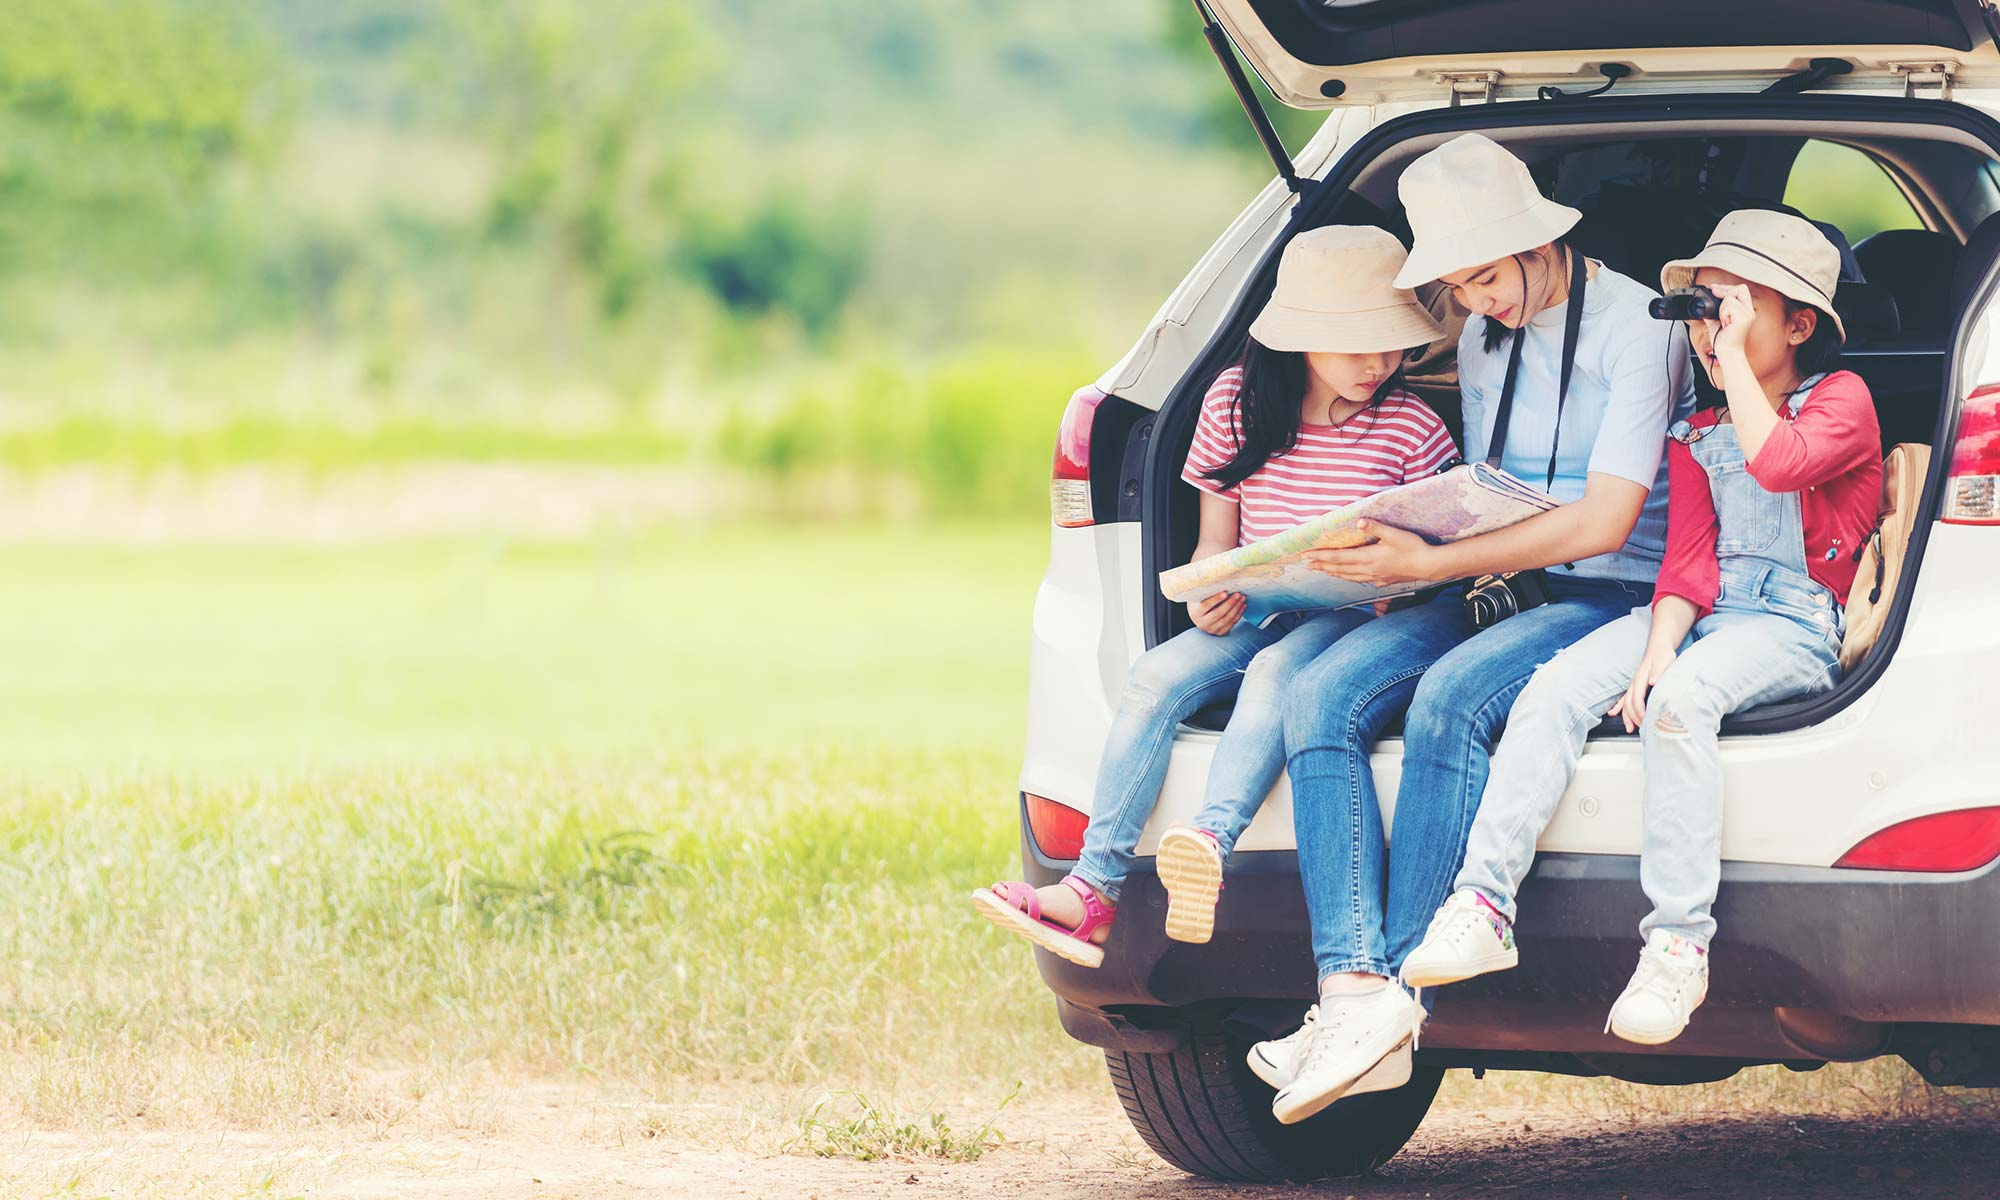 A mother and her two young daughters, all wearing hats, are sitting in the back of their open car trunk looking at a road trip map.